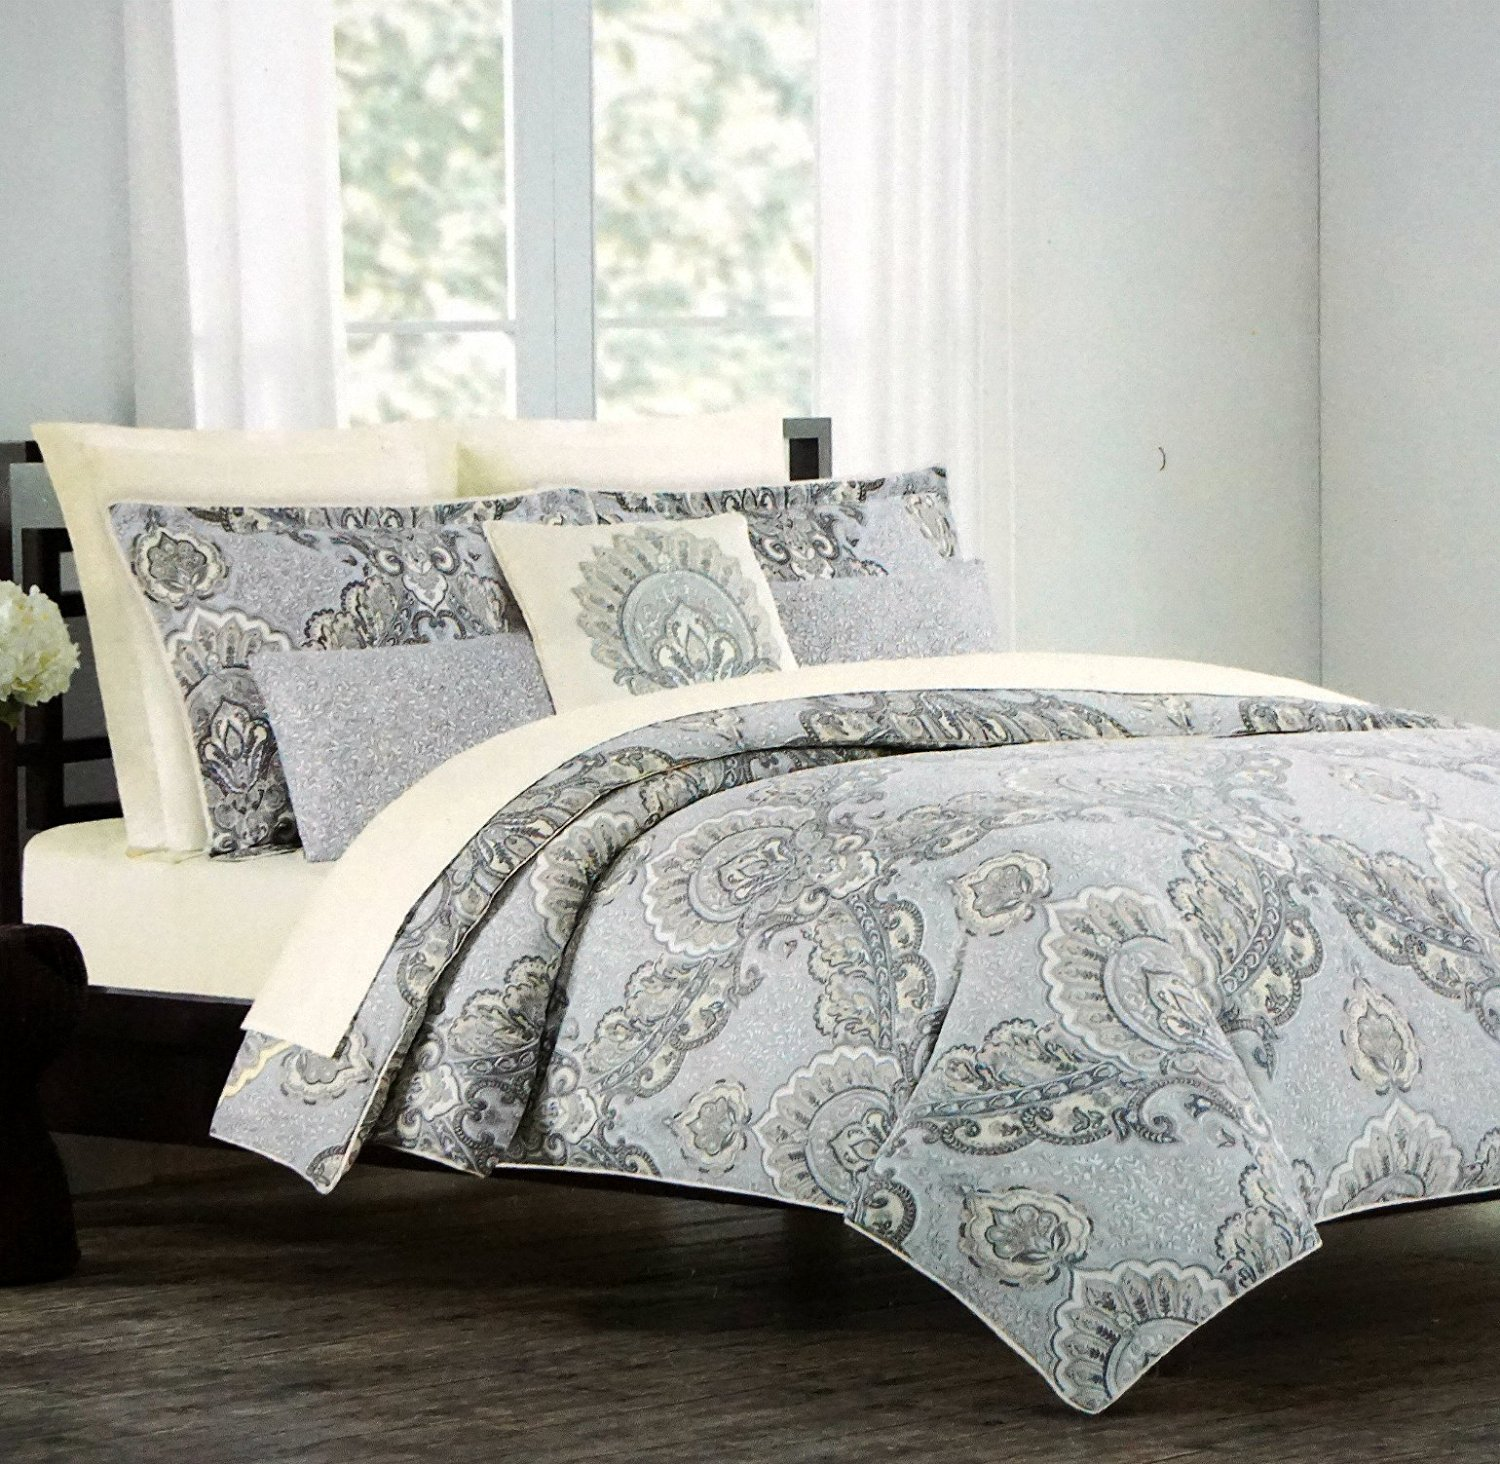 Buy Cynthia Rowley Duvet Cover Luxury Boteh Paisley Print In Grey Slate Blue 3 Piece Set In Full Queen Or King Size Queen In Cheap Price On M Alibaba Com